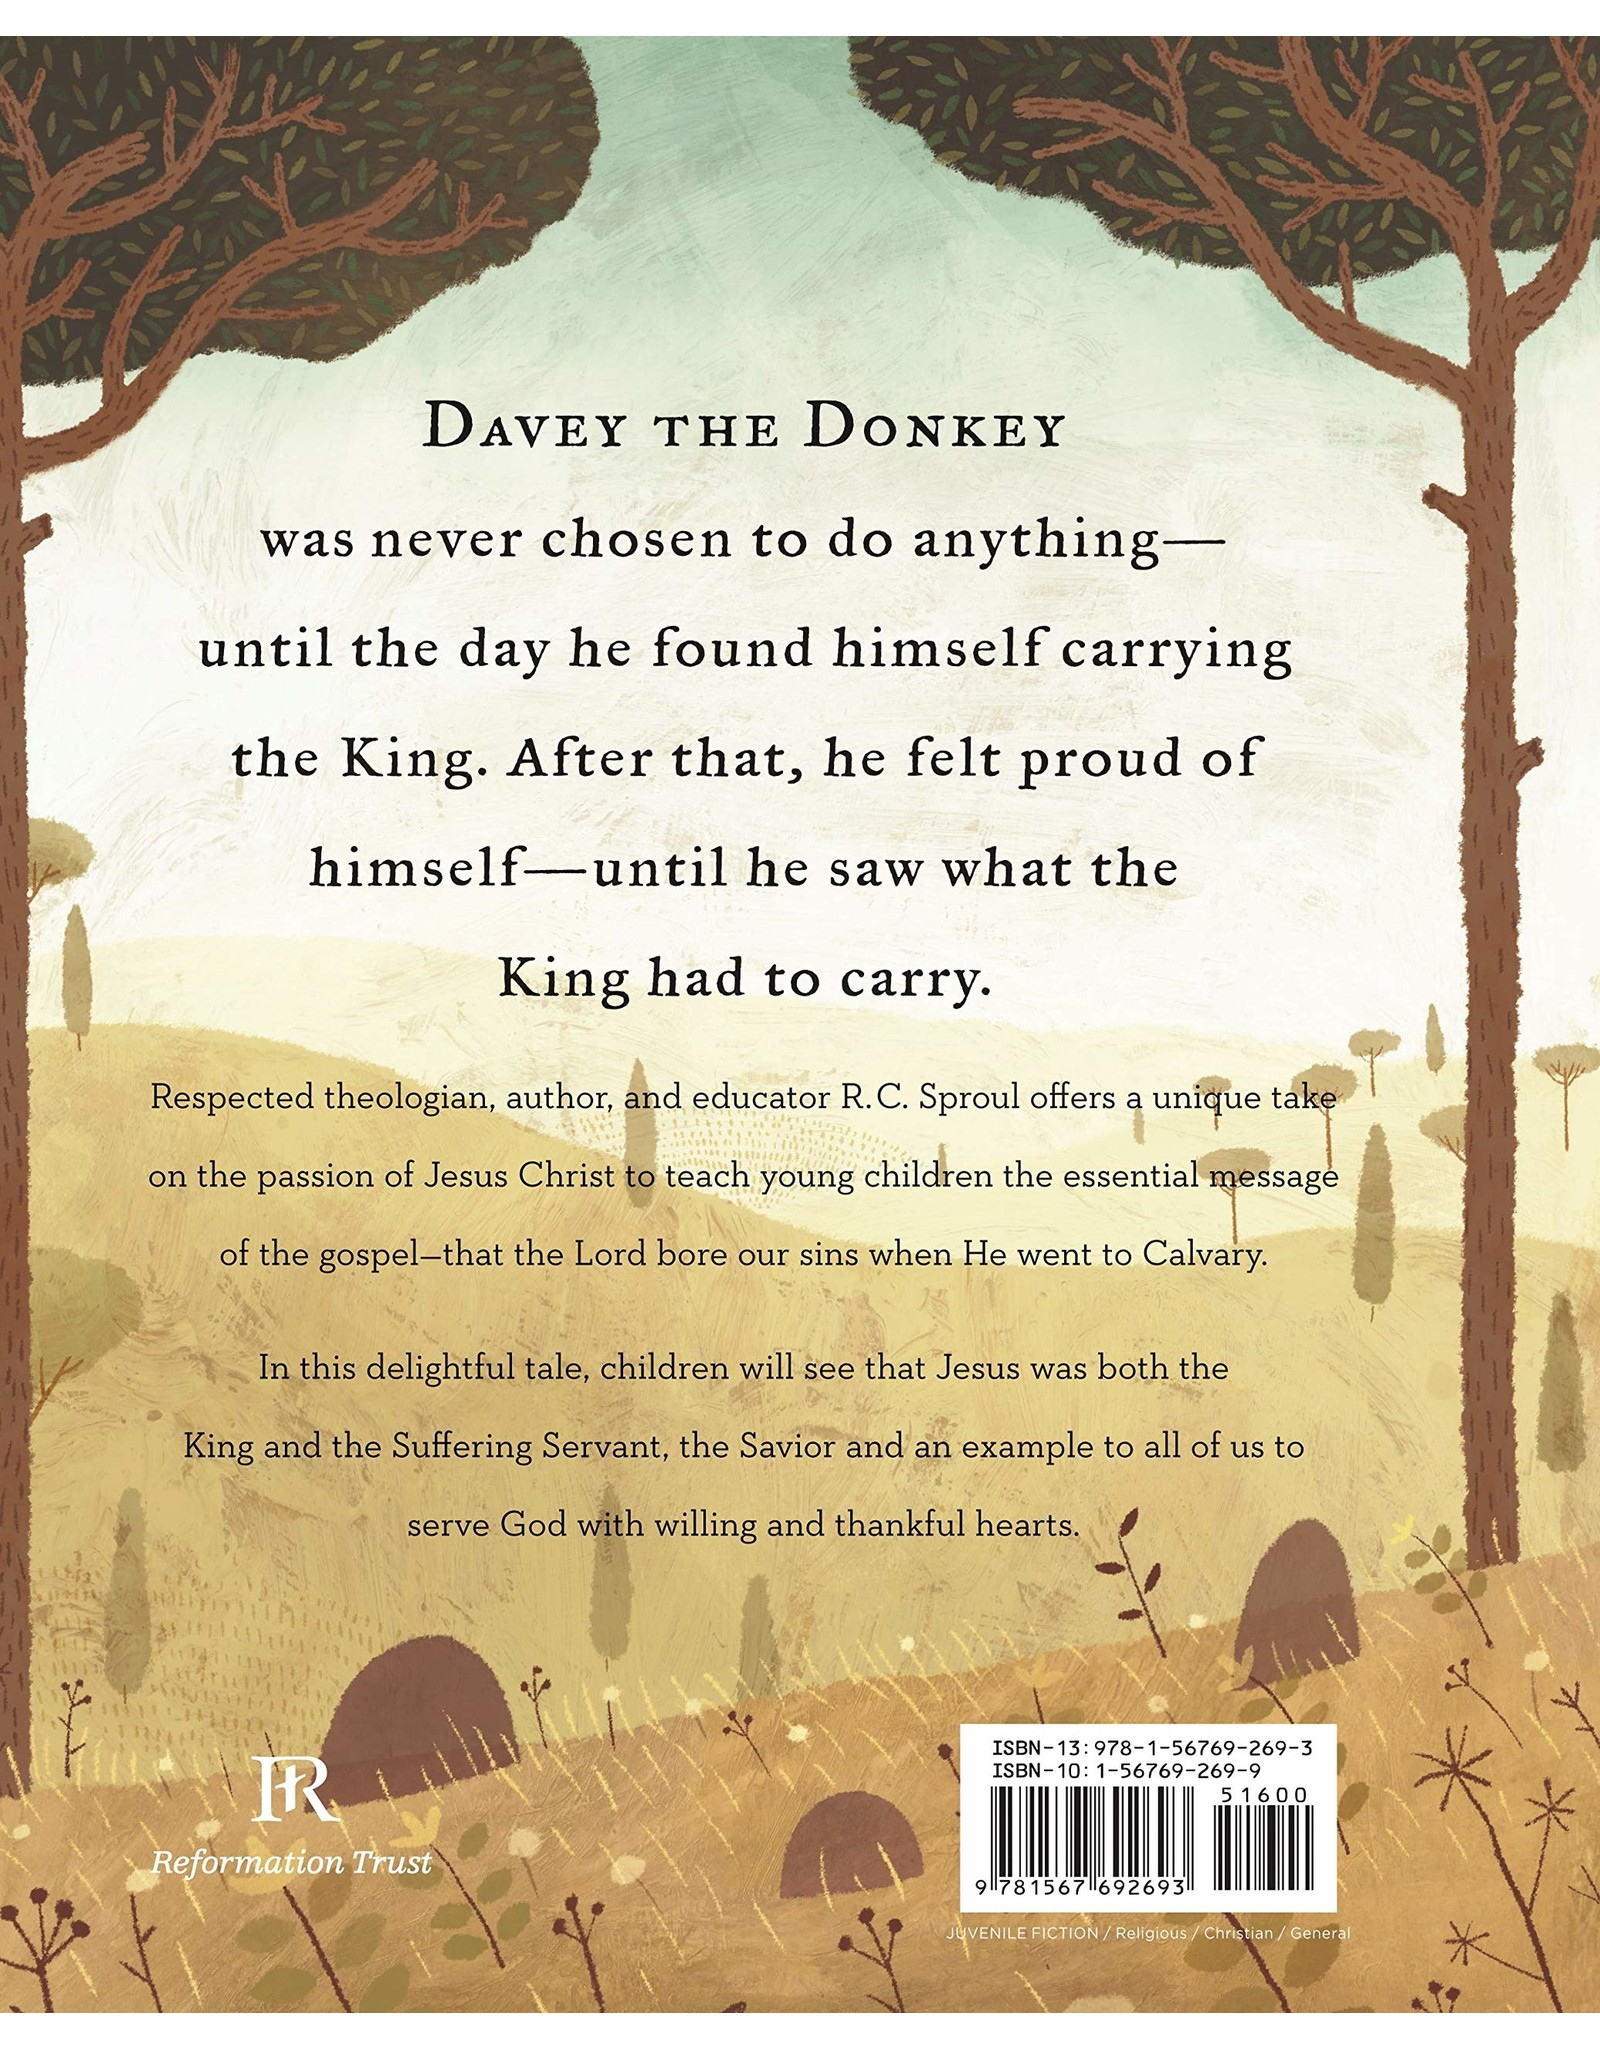 Ligonier / Reformation Trust The Donkey Who Carried a King